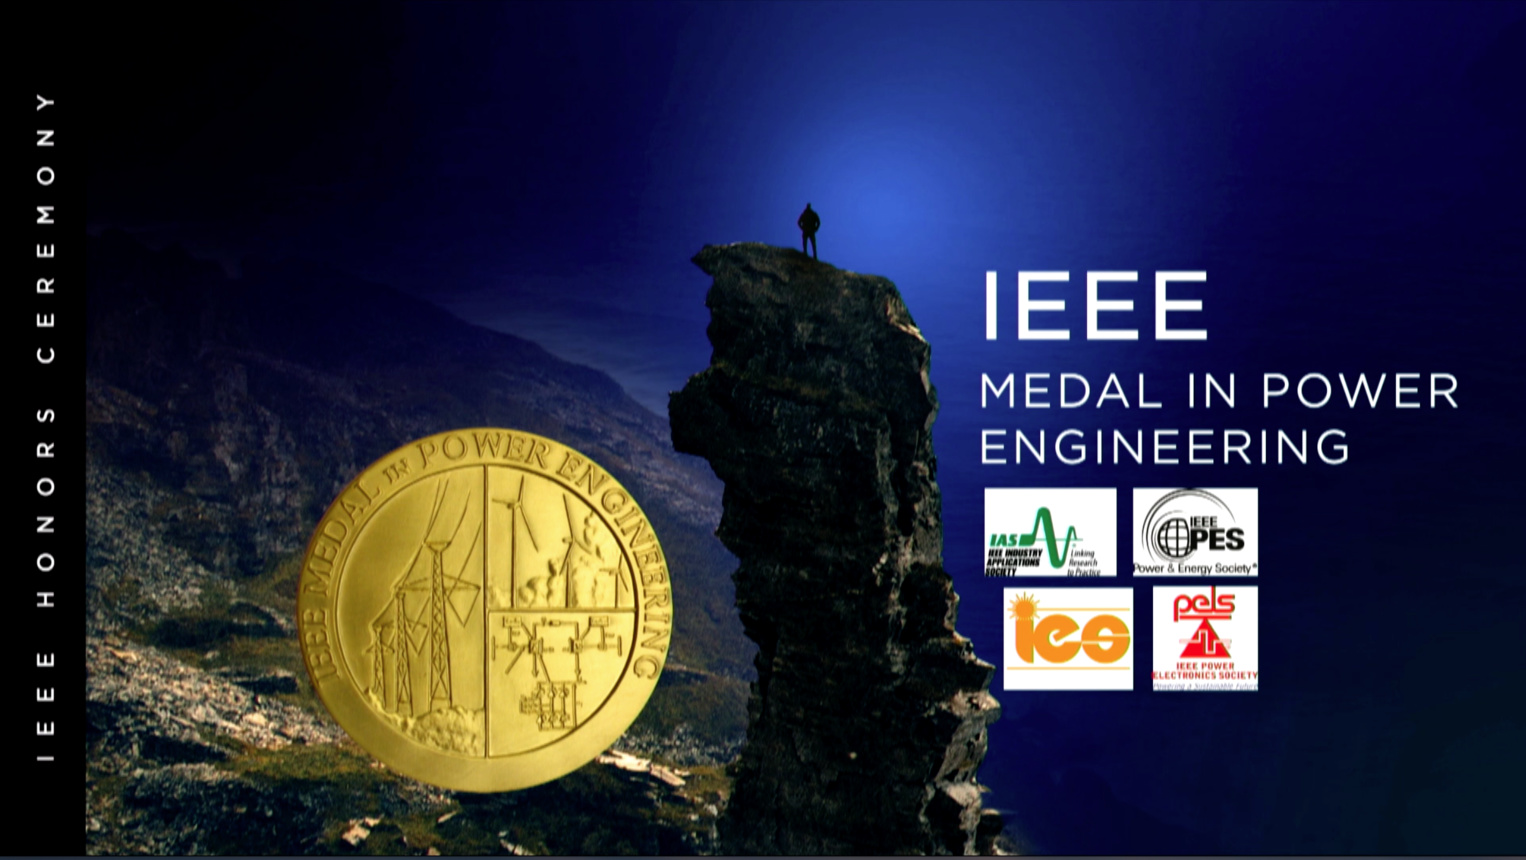 IEEE Medal in Power Engineering - Hirofumi Akagi - 2018 IEEE Honors Ceremony